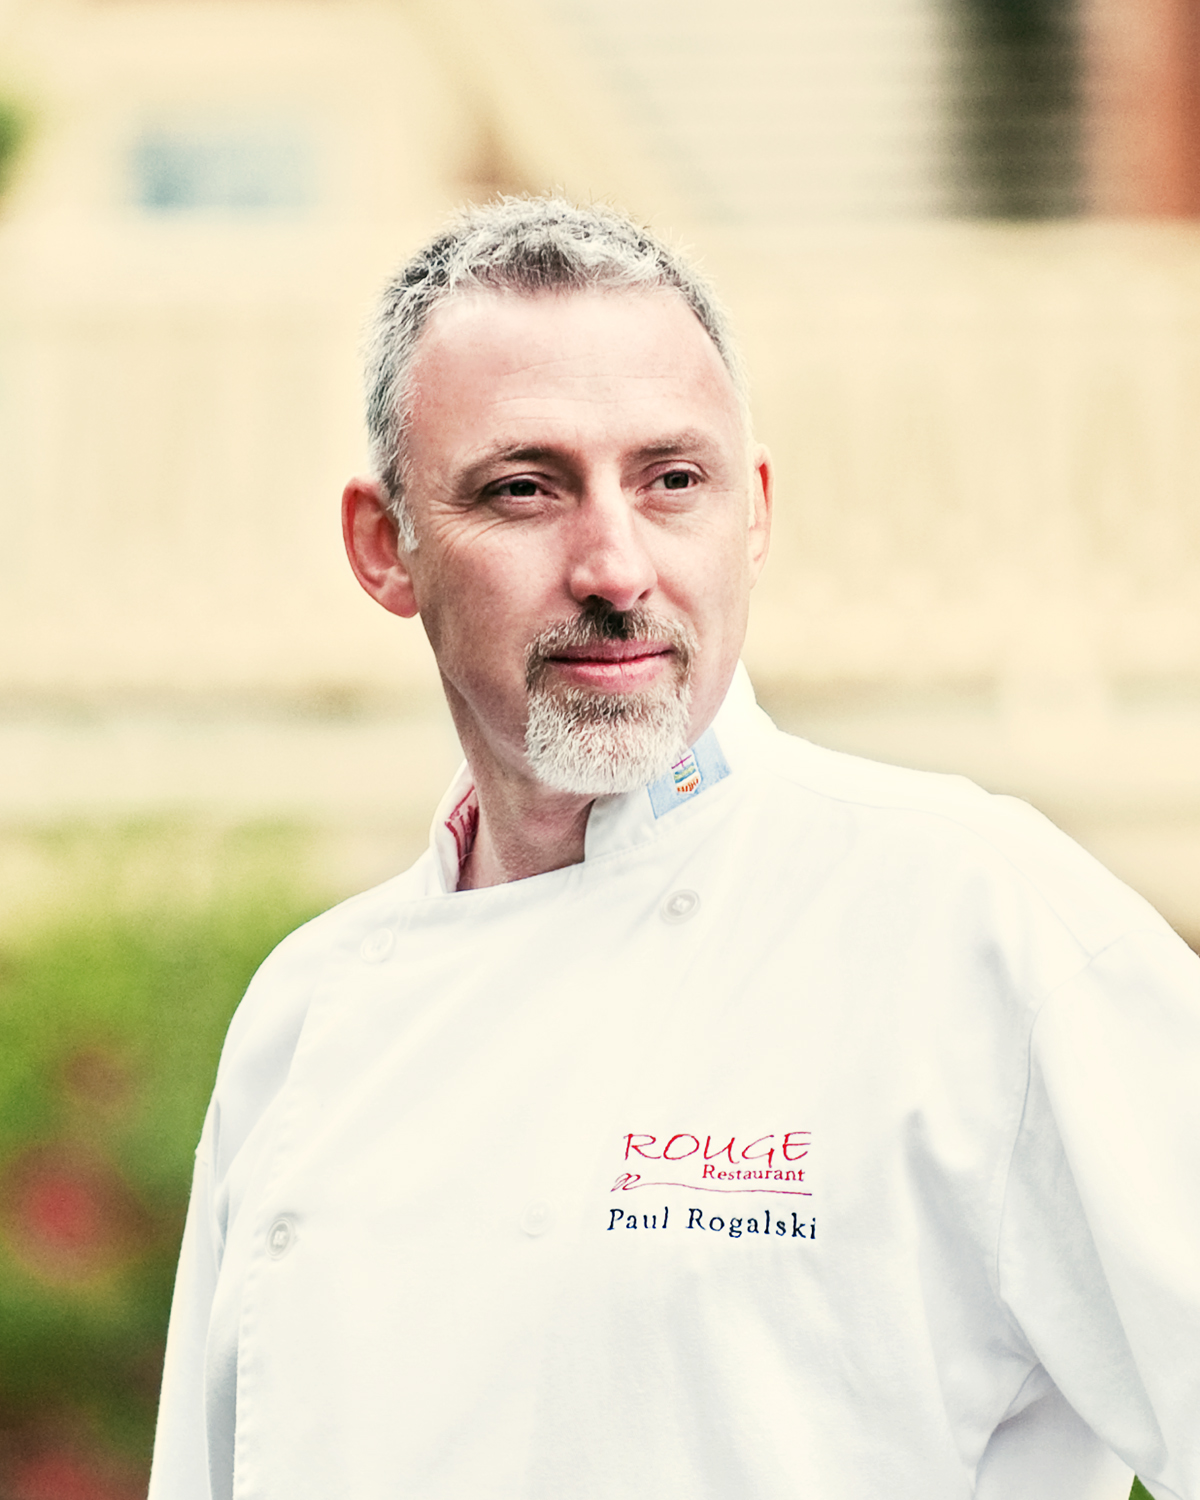 Chef Paul Rogalski - Full Interview